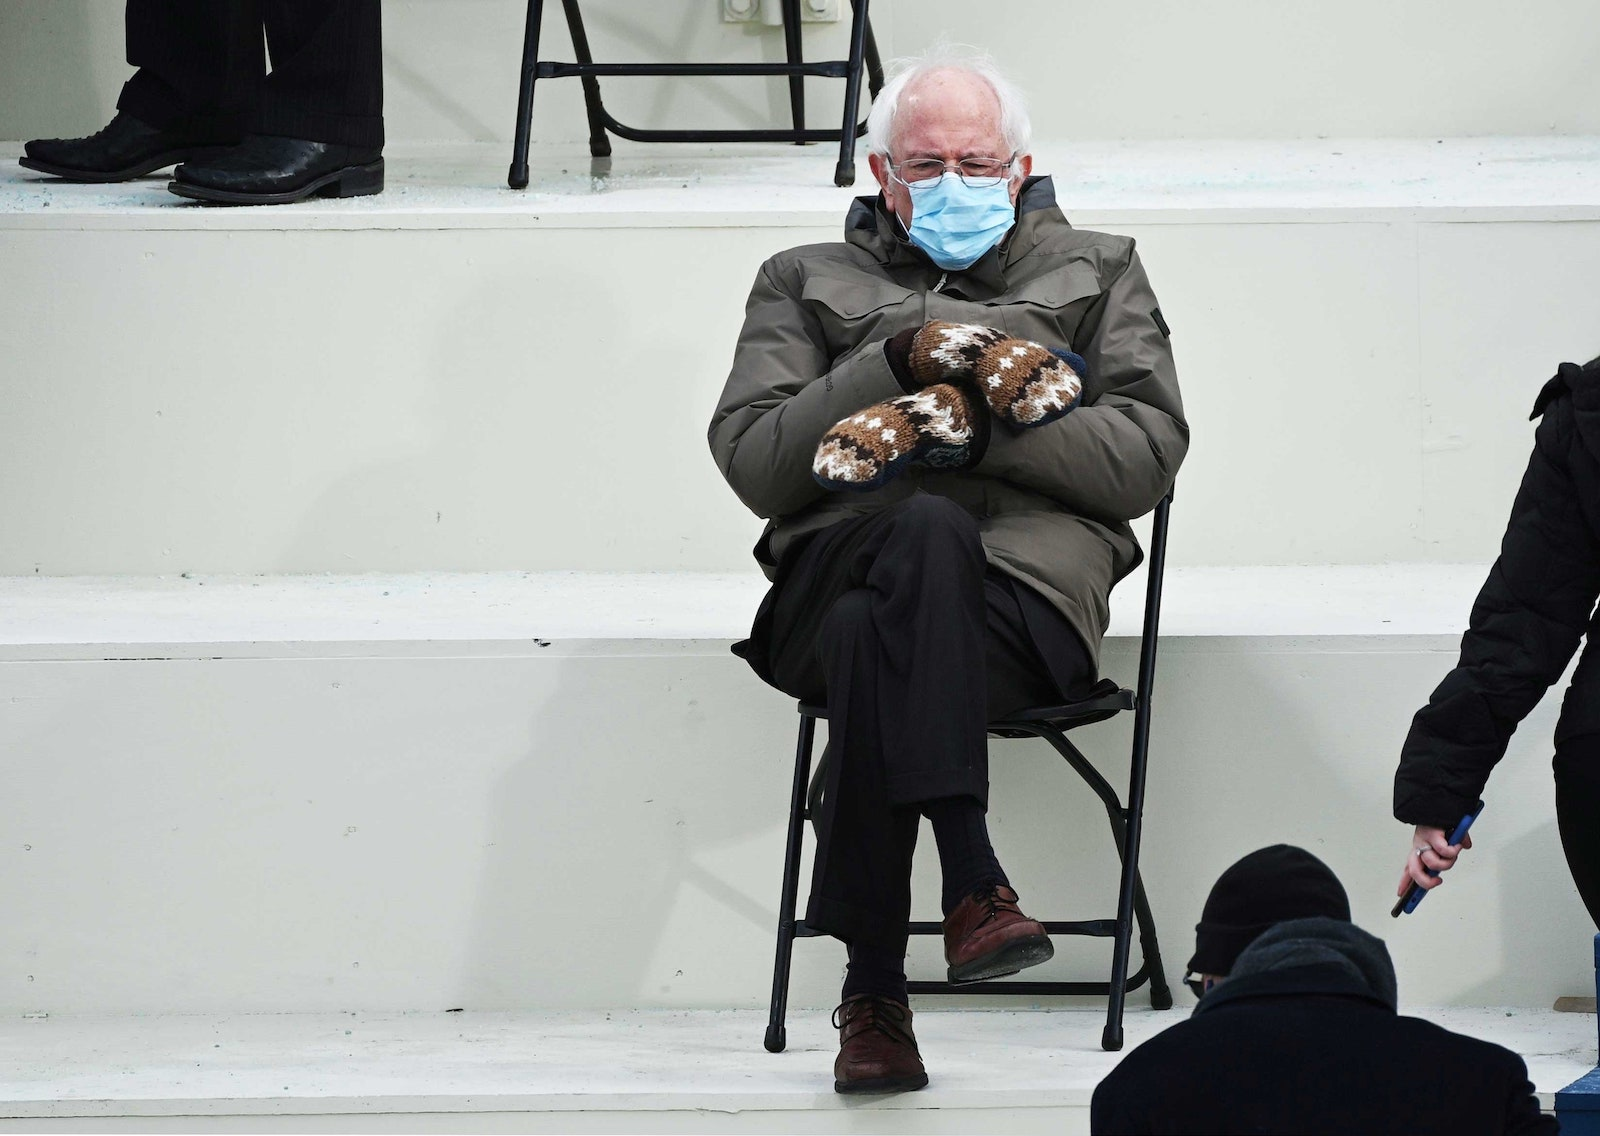 Bernie Sanders S Inauguration Look Was Made For Memes The Best Ones Film Daily